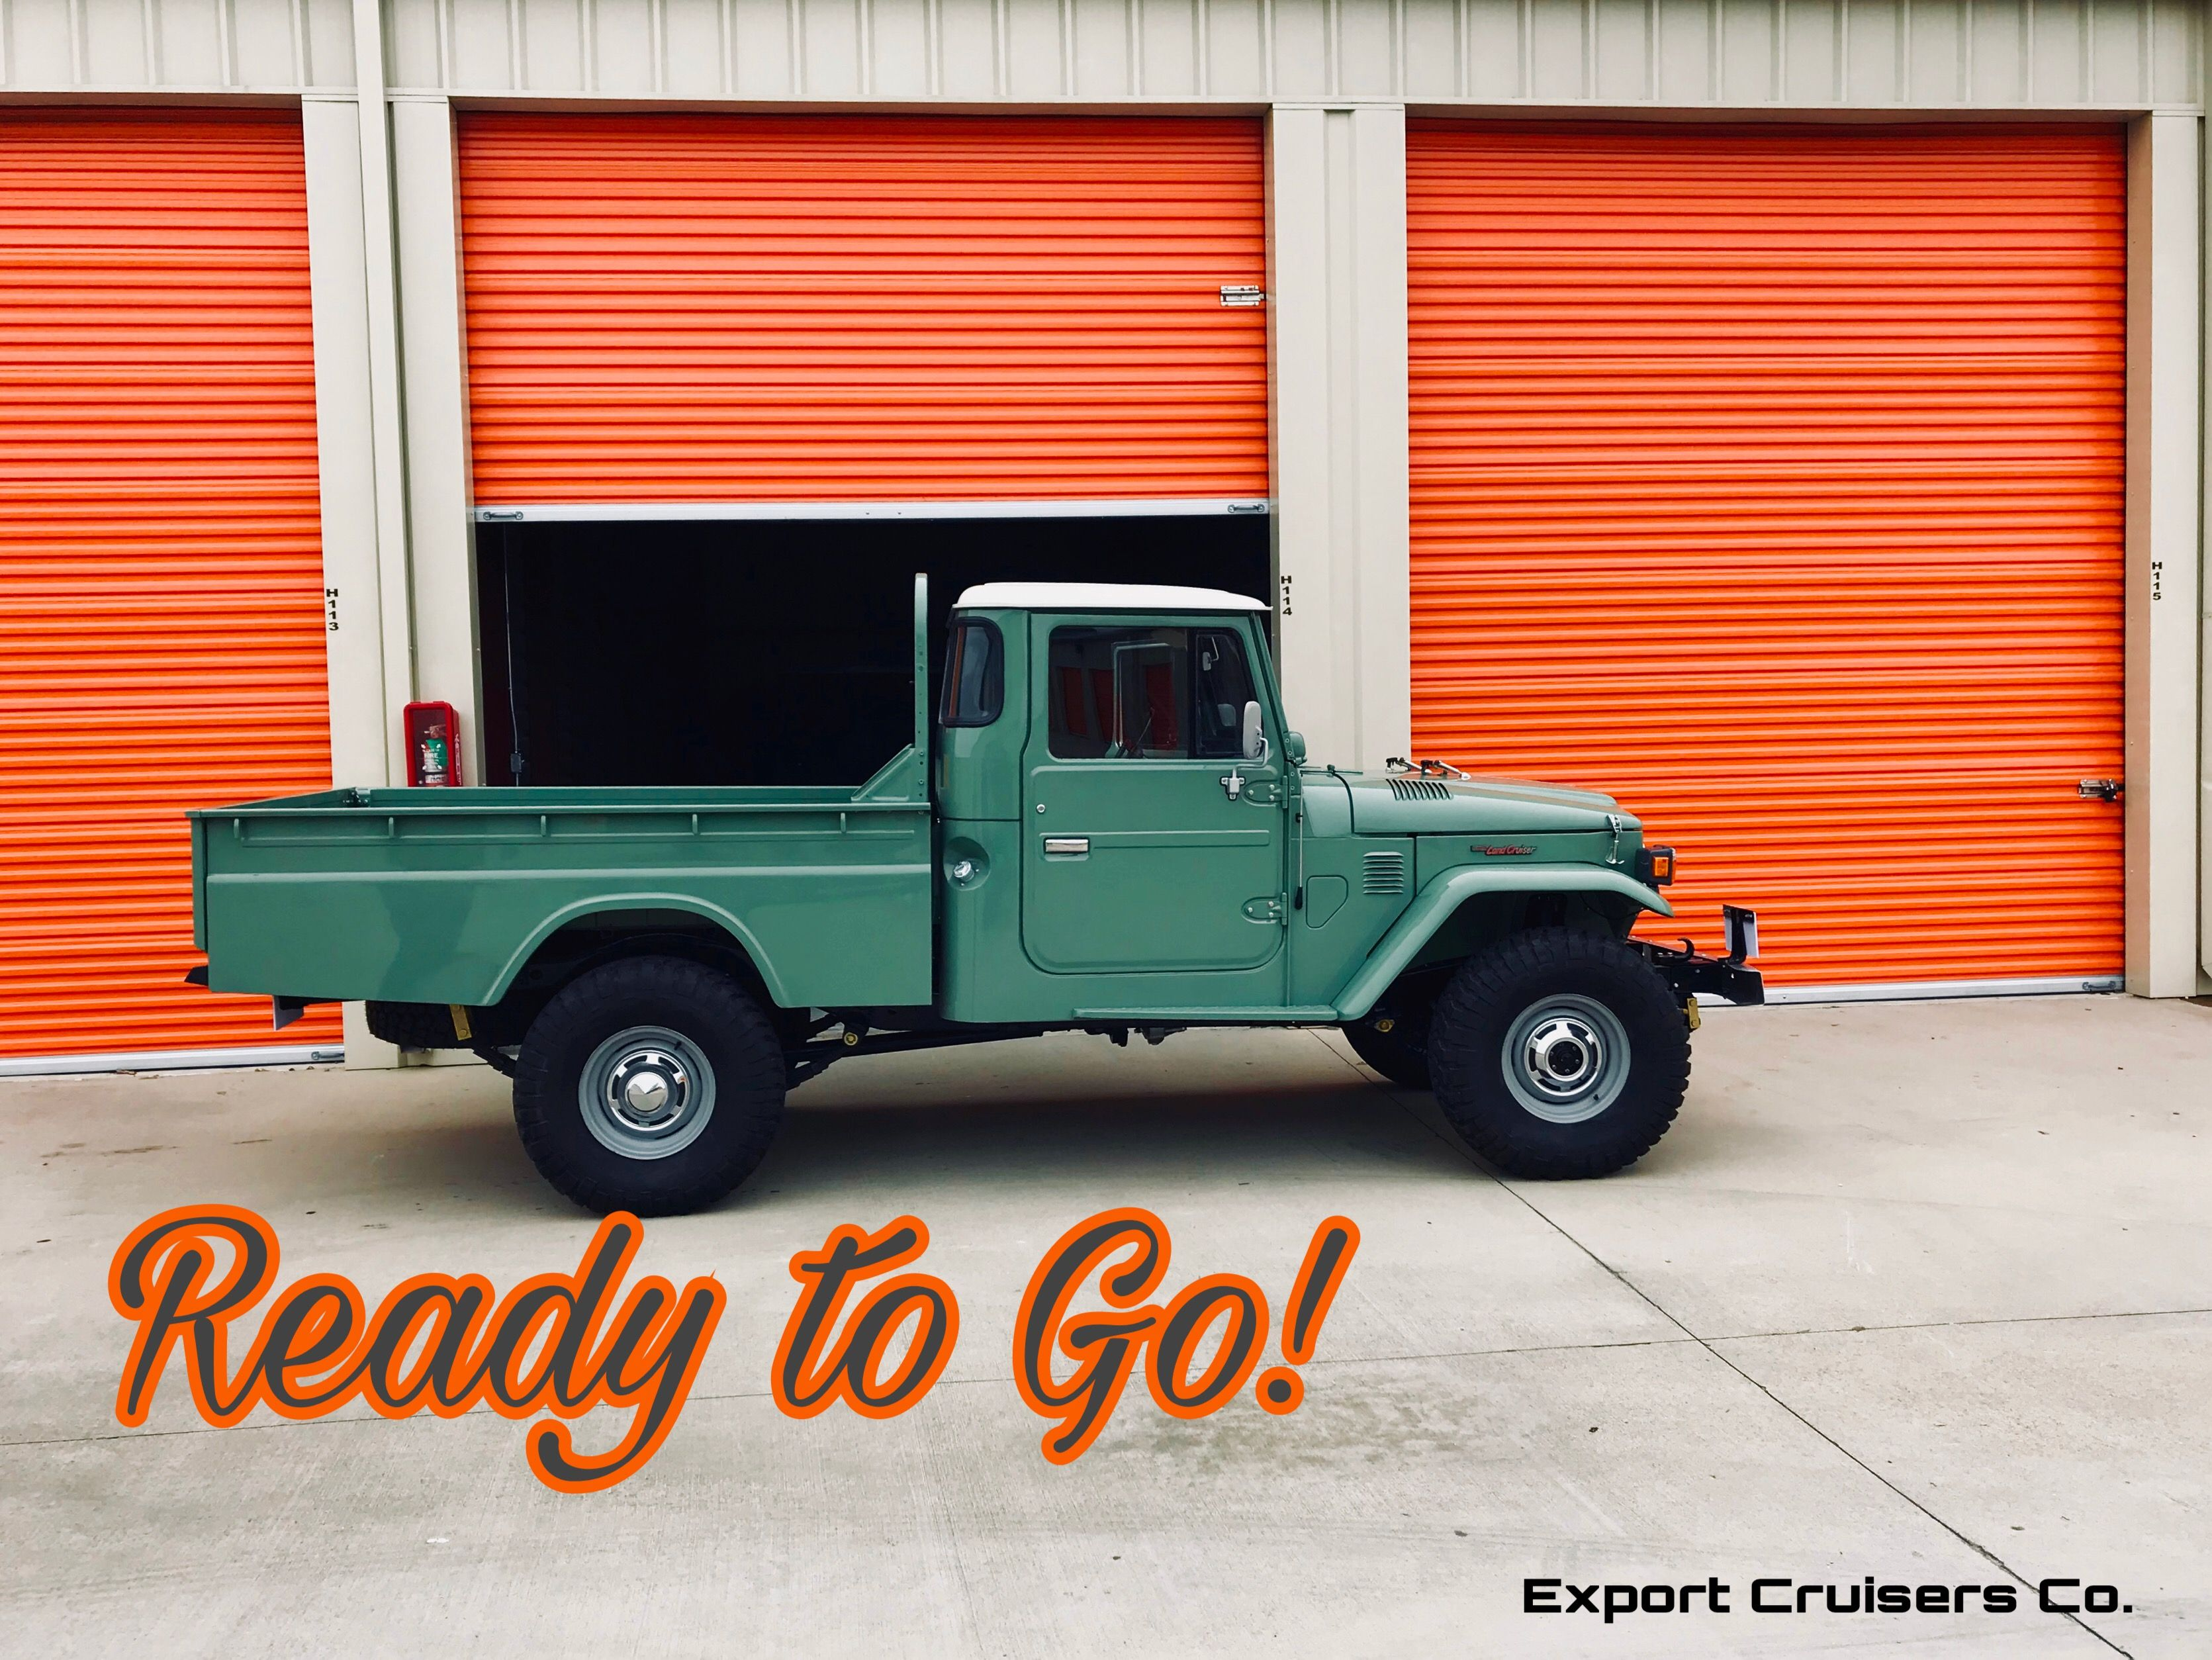 Ready For Sale By Appointment Rare 1978 Toyota Land Cruiser Diesel Long Bed Pickup Fully Professionally Restored Contact Us Now To Be The First To Have The